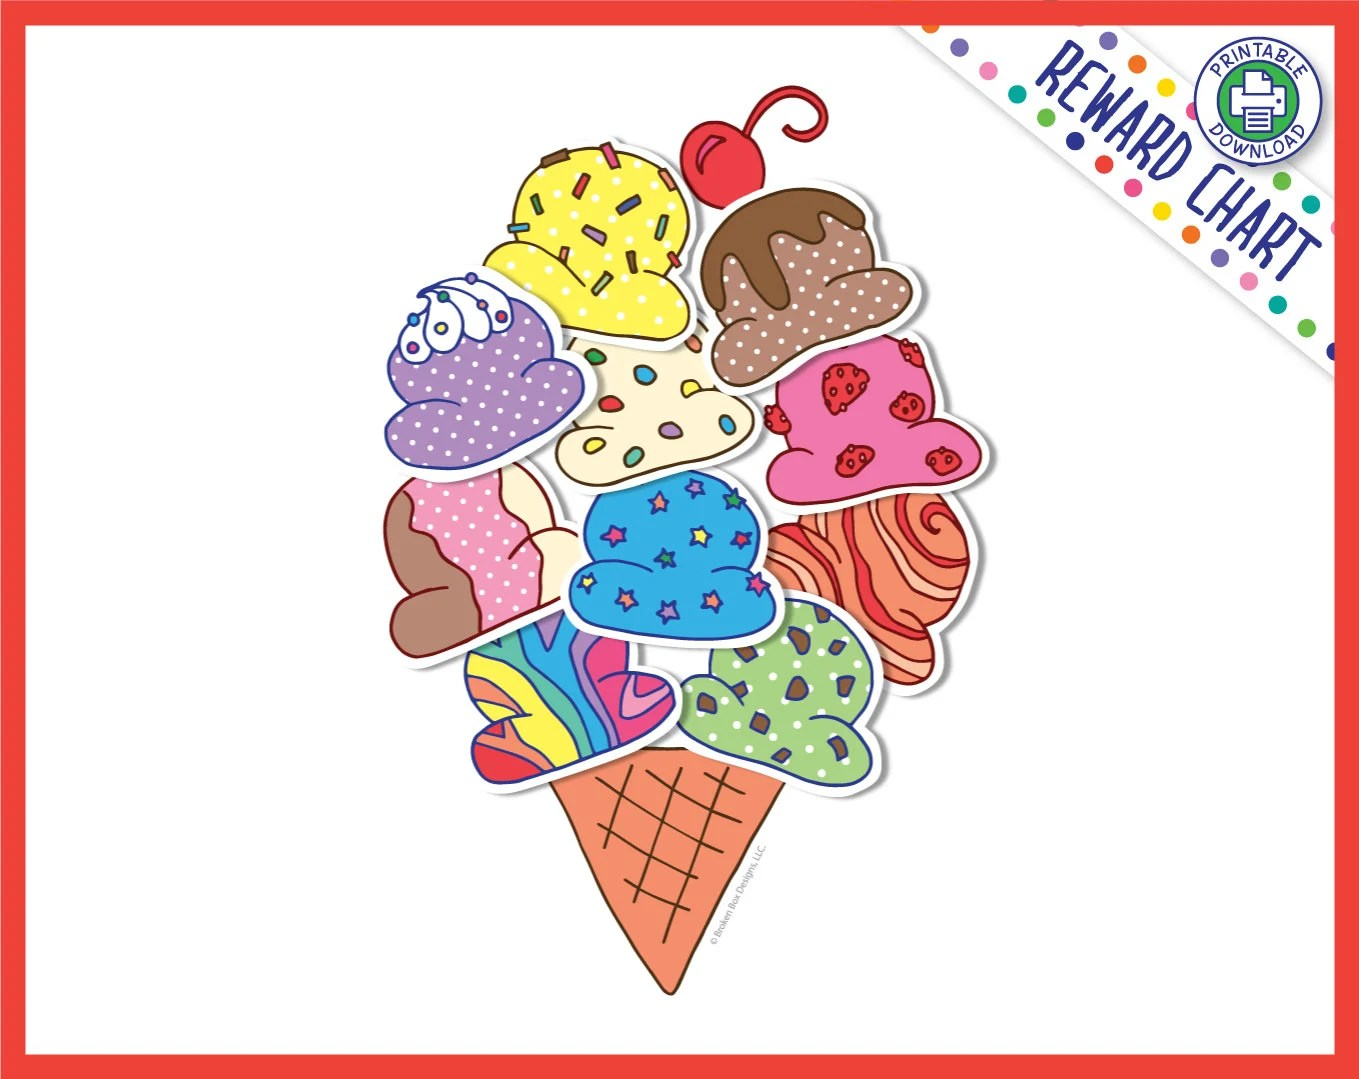 Ice cream cone reward chart printable download also etsy rh